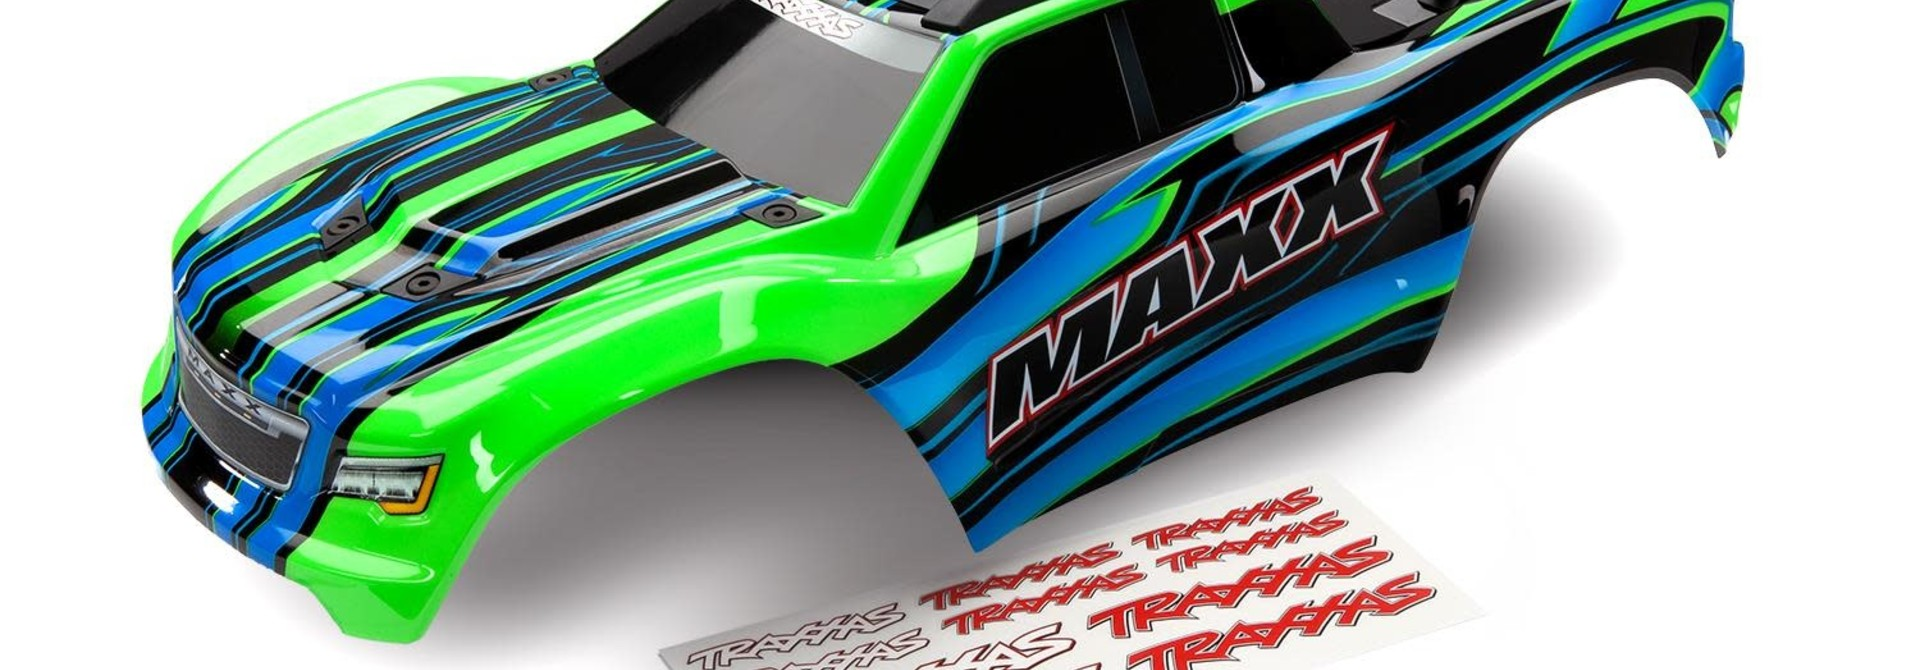 BODY, MAXX, GREEN (PAINTED)/ DECAL SHEET